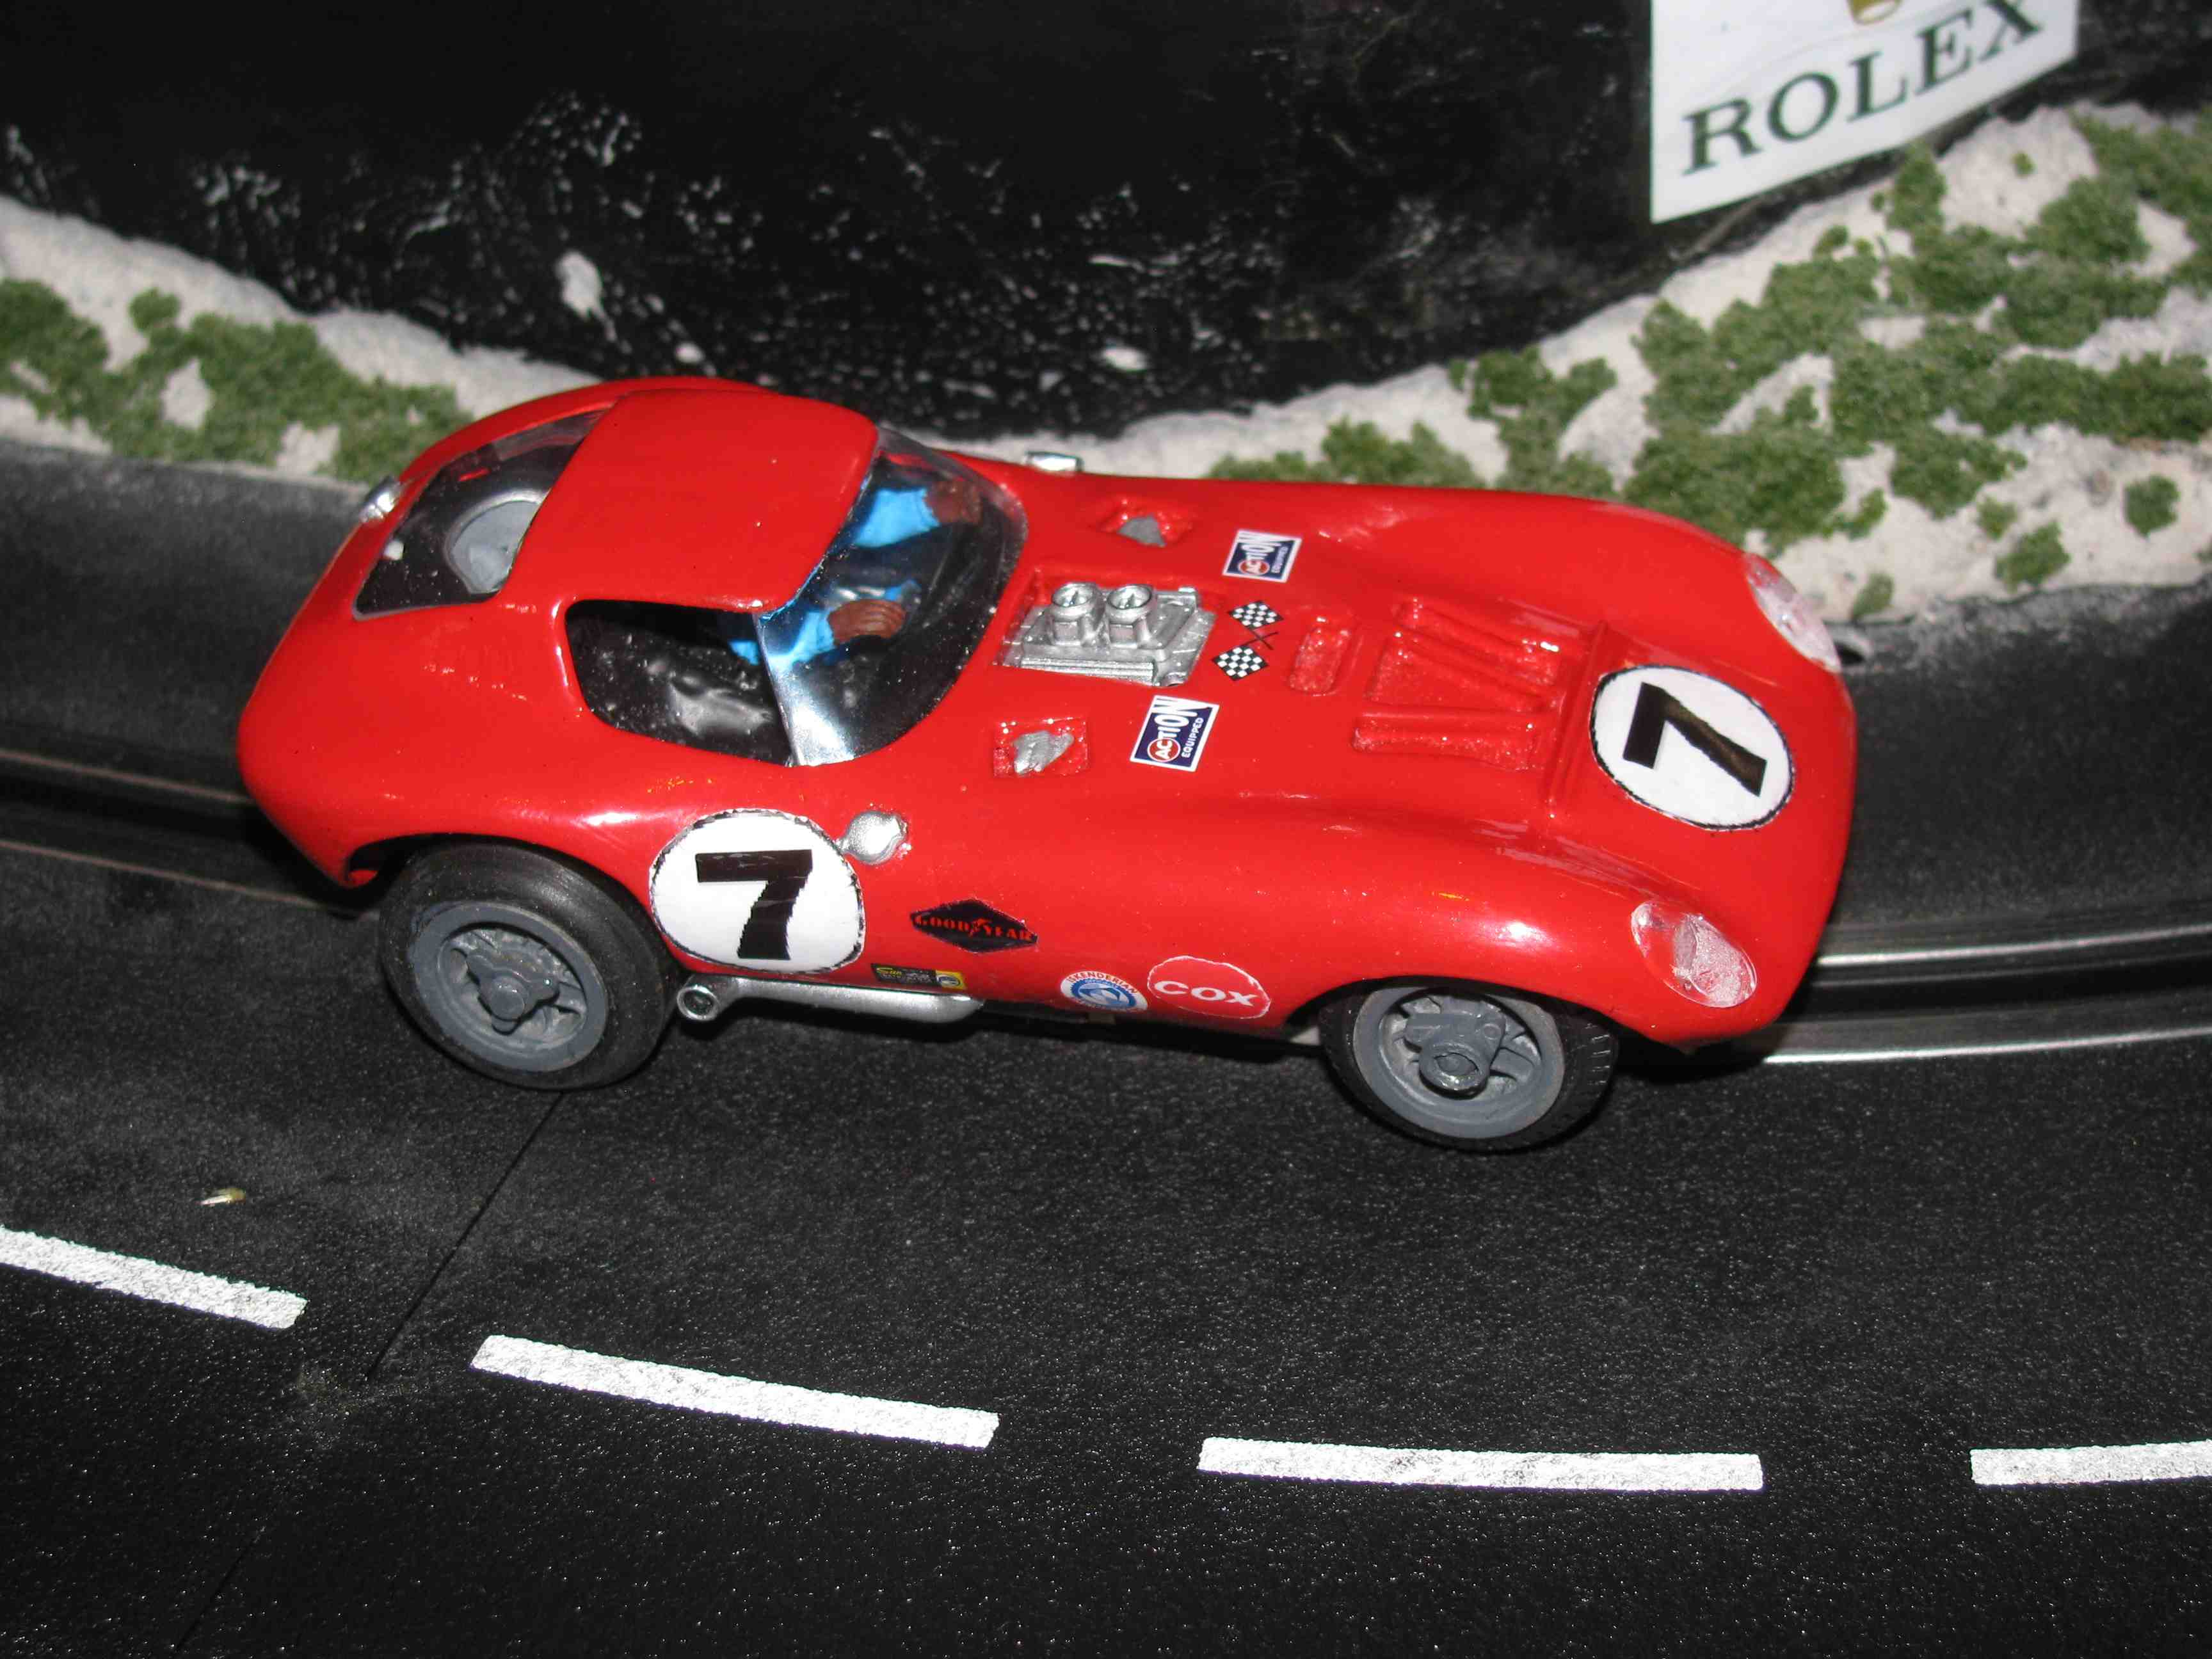 * SOLD * Vintage Cox Cheetah Slot Car 1/32 Scale